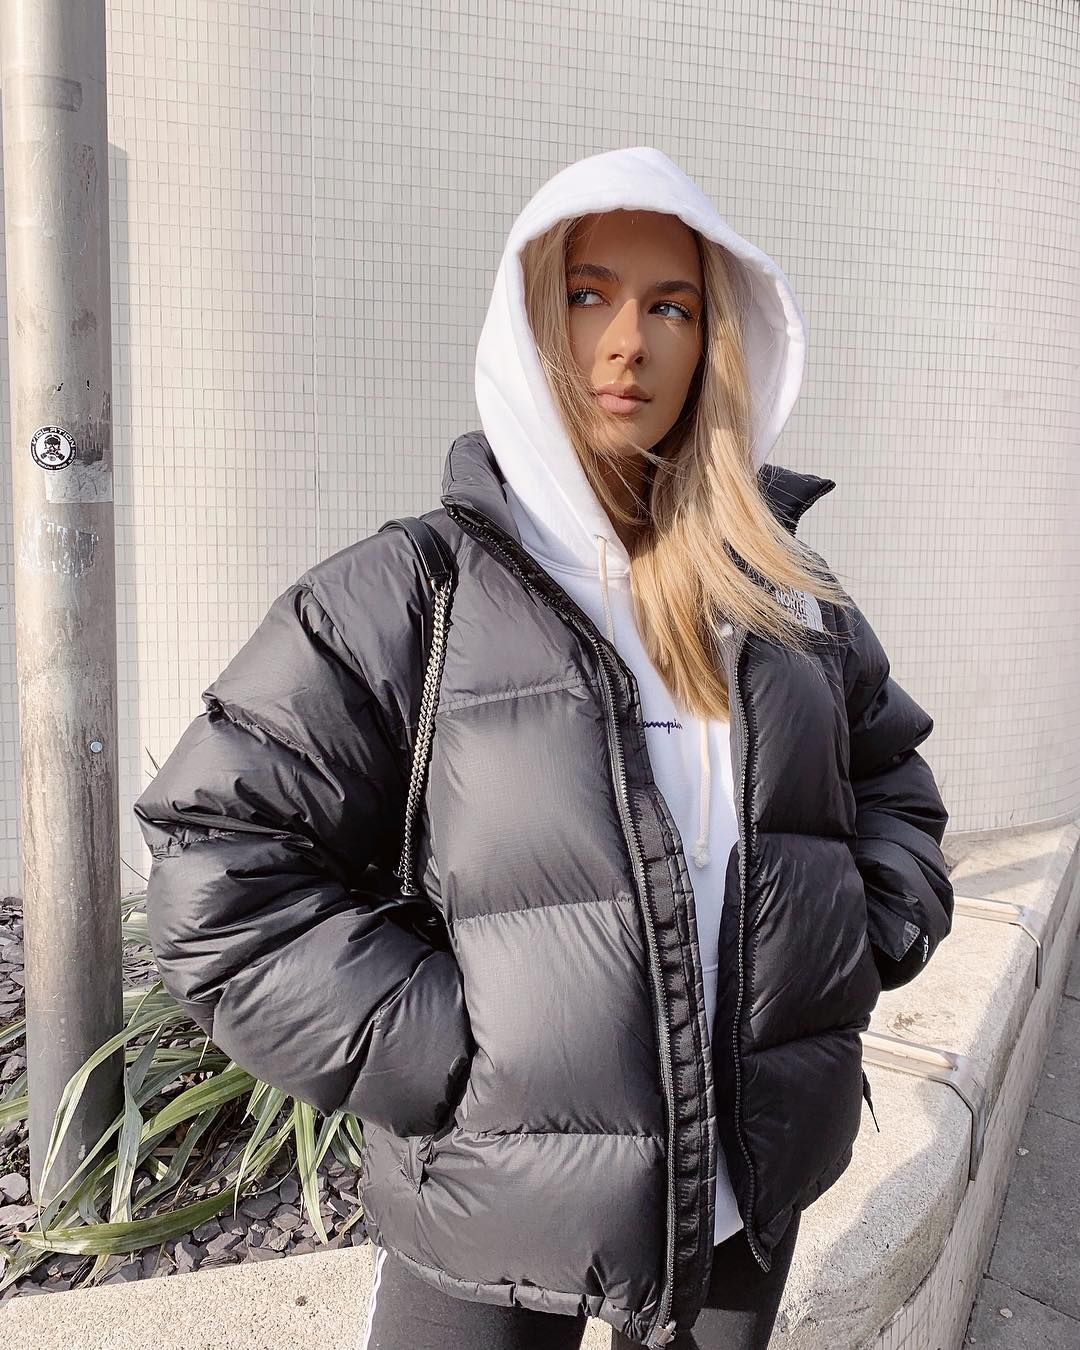 Sophia Tuxford On Instagram Hood Up Because Greasy Hair And Cinzia Said I Looked Cool L Winter Fashion Outfits Casual Winter Outfits North Face Puffer Jacket [ 1350 x 1080 Pixel ]